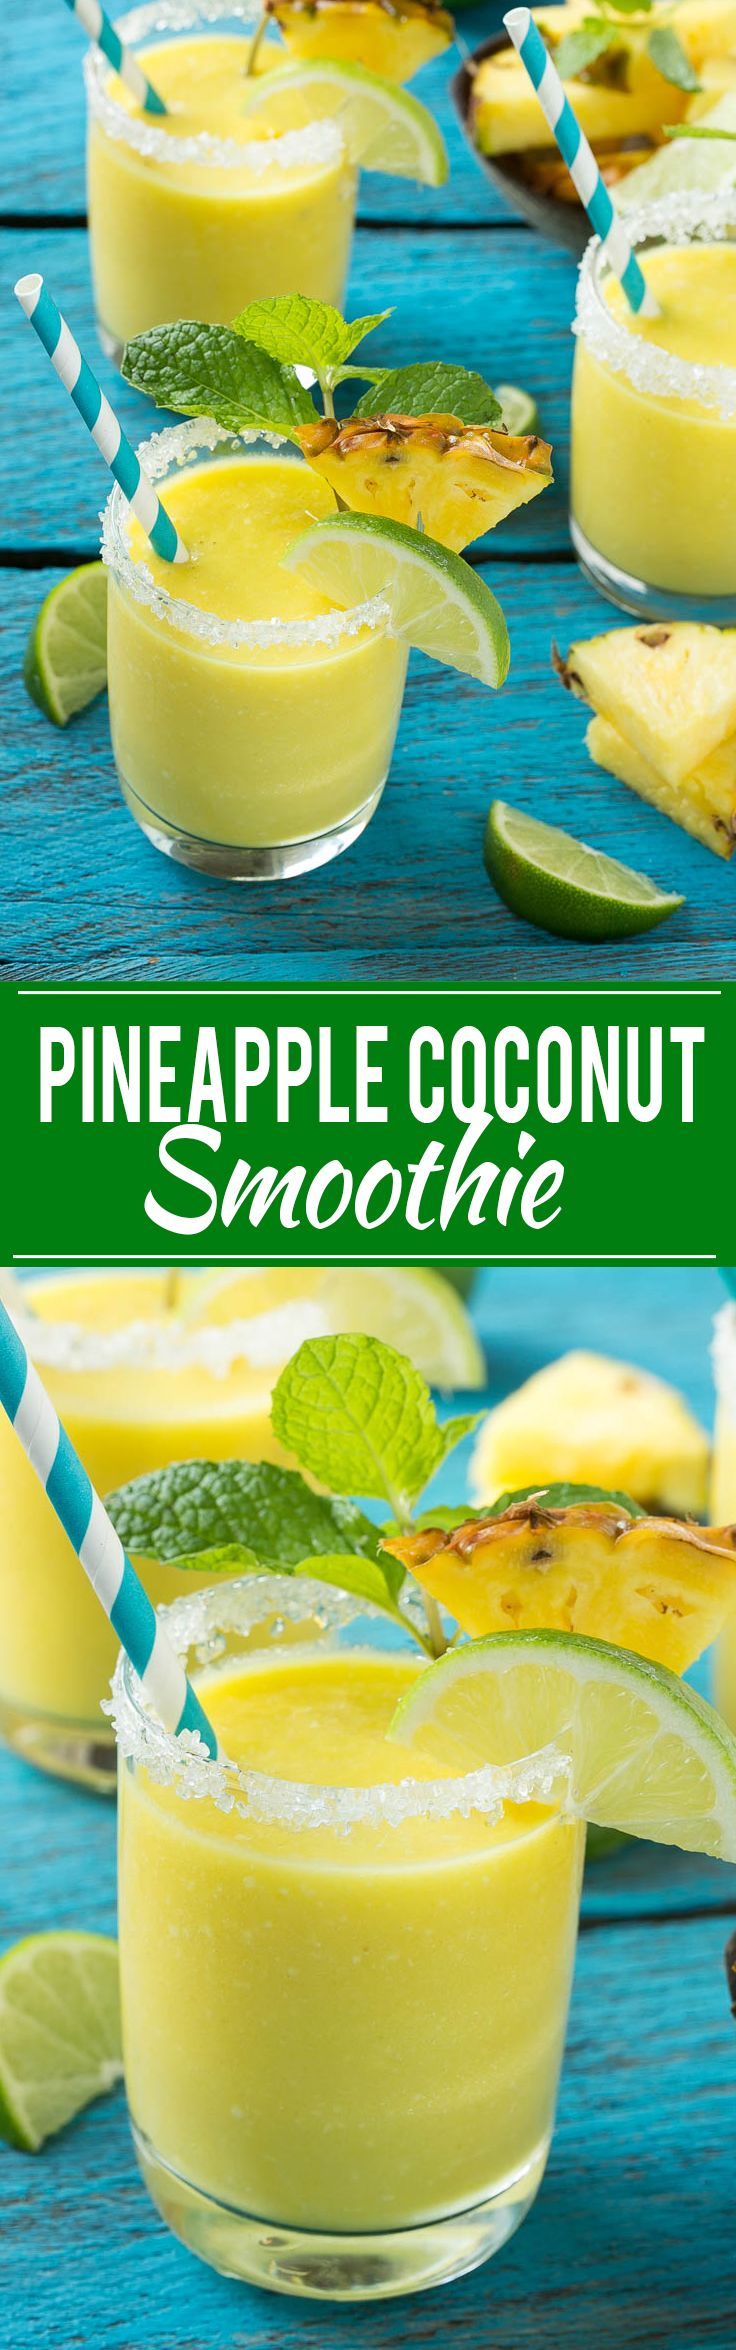 This pineapple coconut smoothie recipe is a tropical fruit delight that's both healthy and refreshing. #ad #fruitsmoothie